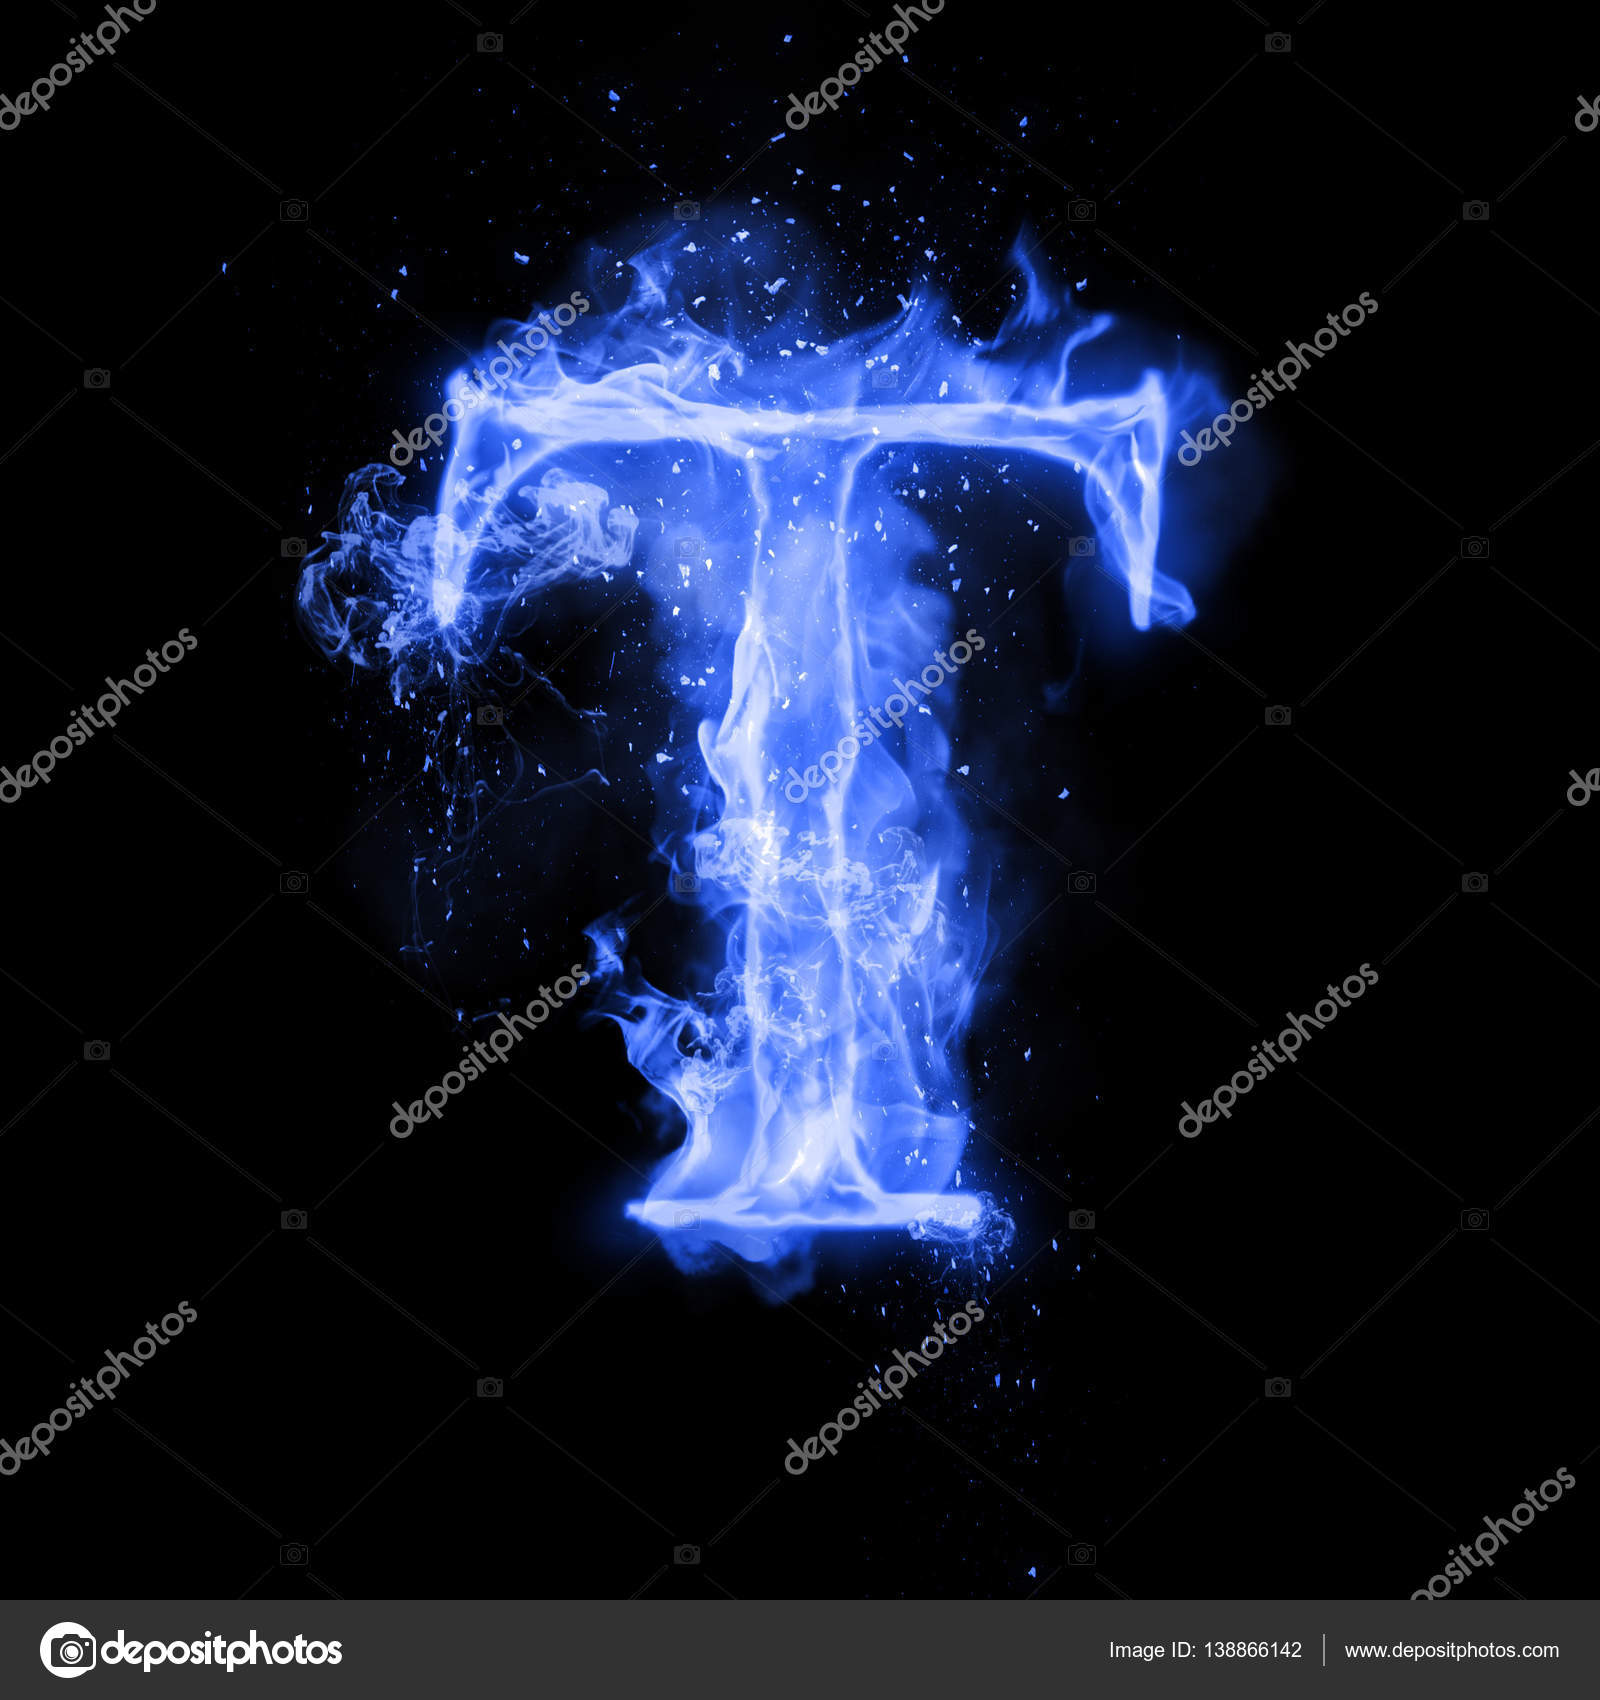 Fire letter t of burning flame light stock photo ronedale 138866142 fire letter t of burning flame light stock photo thecheapjerseys Choice Image